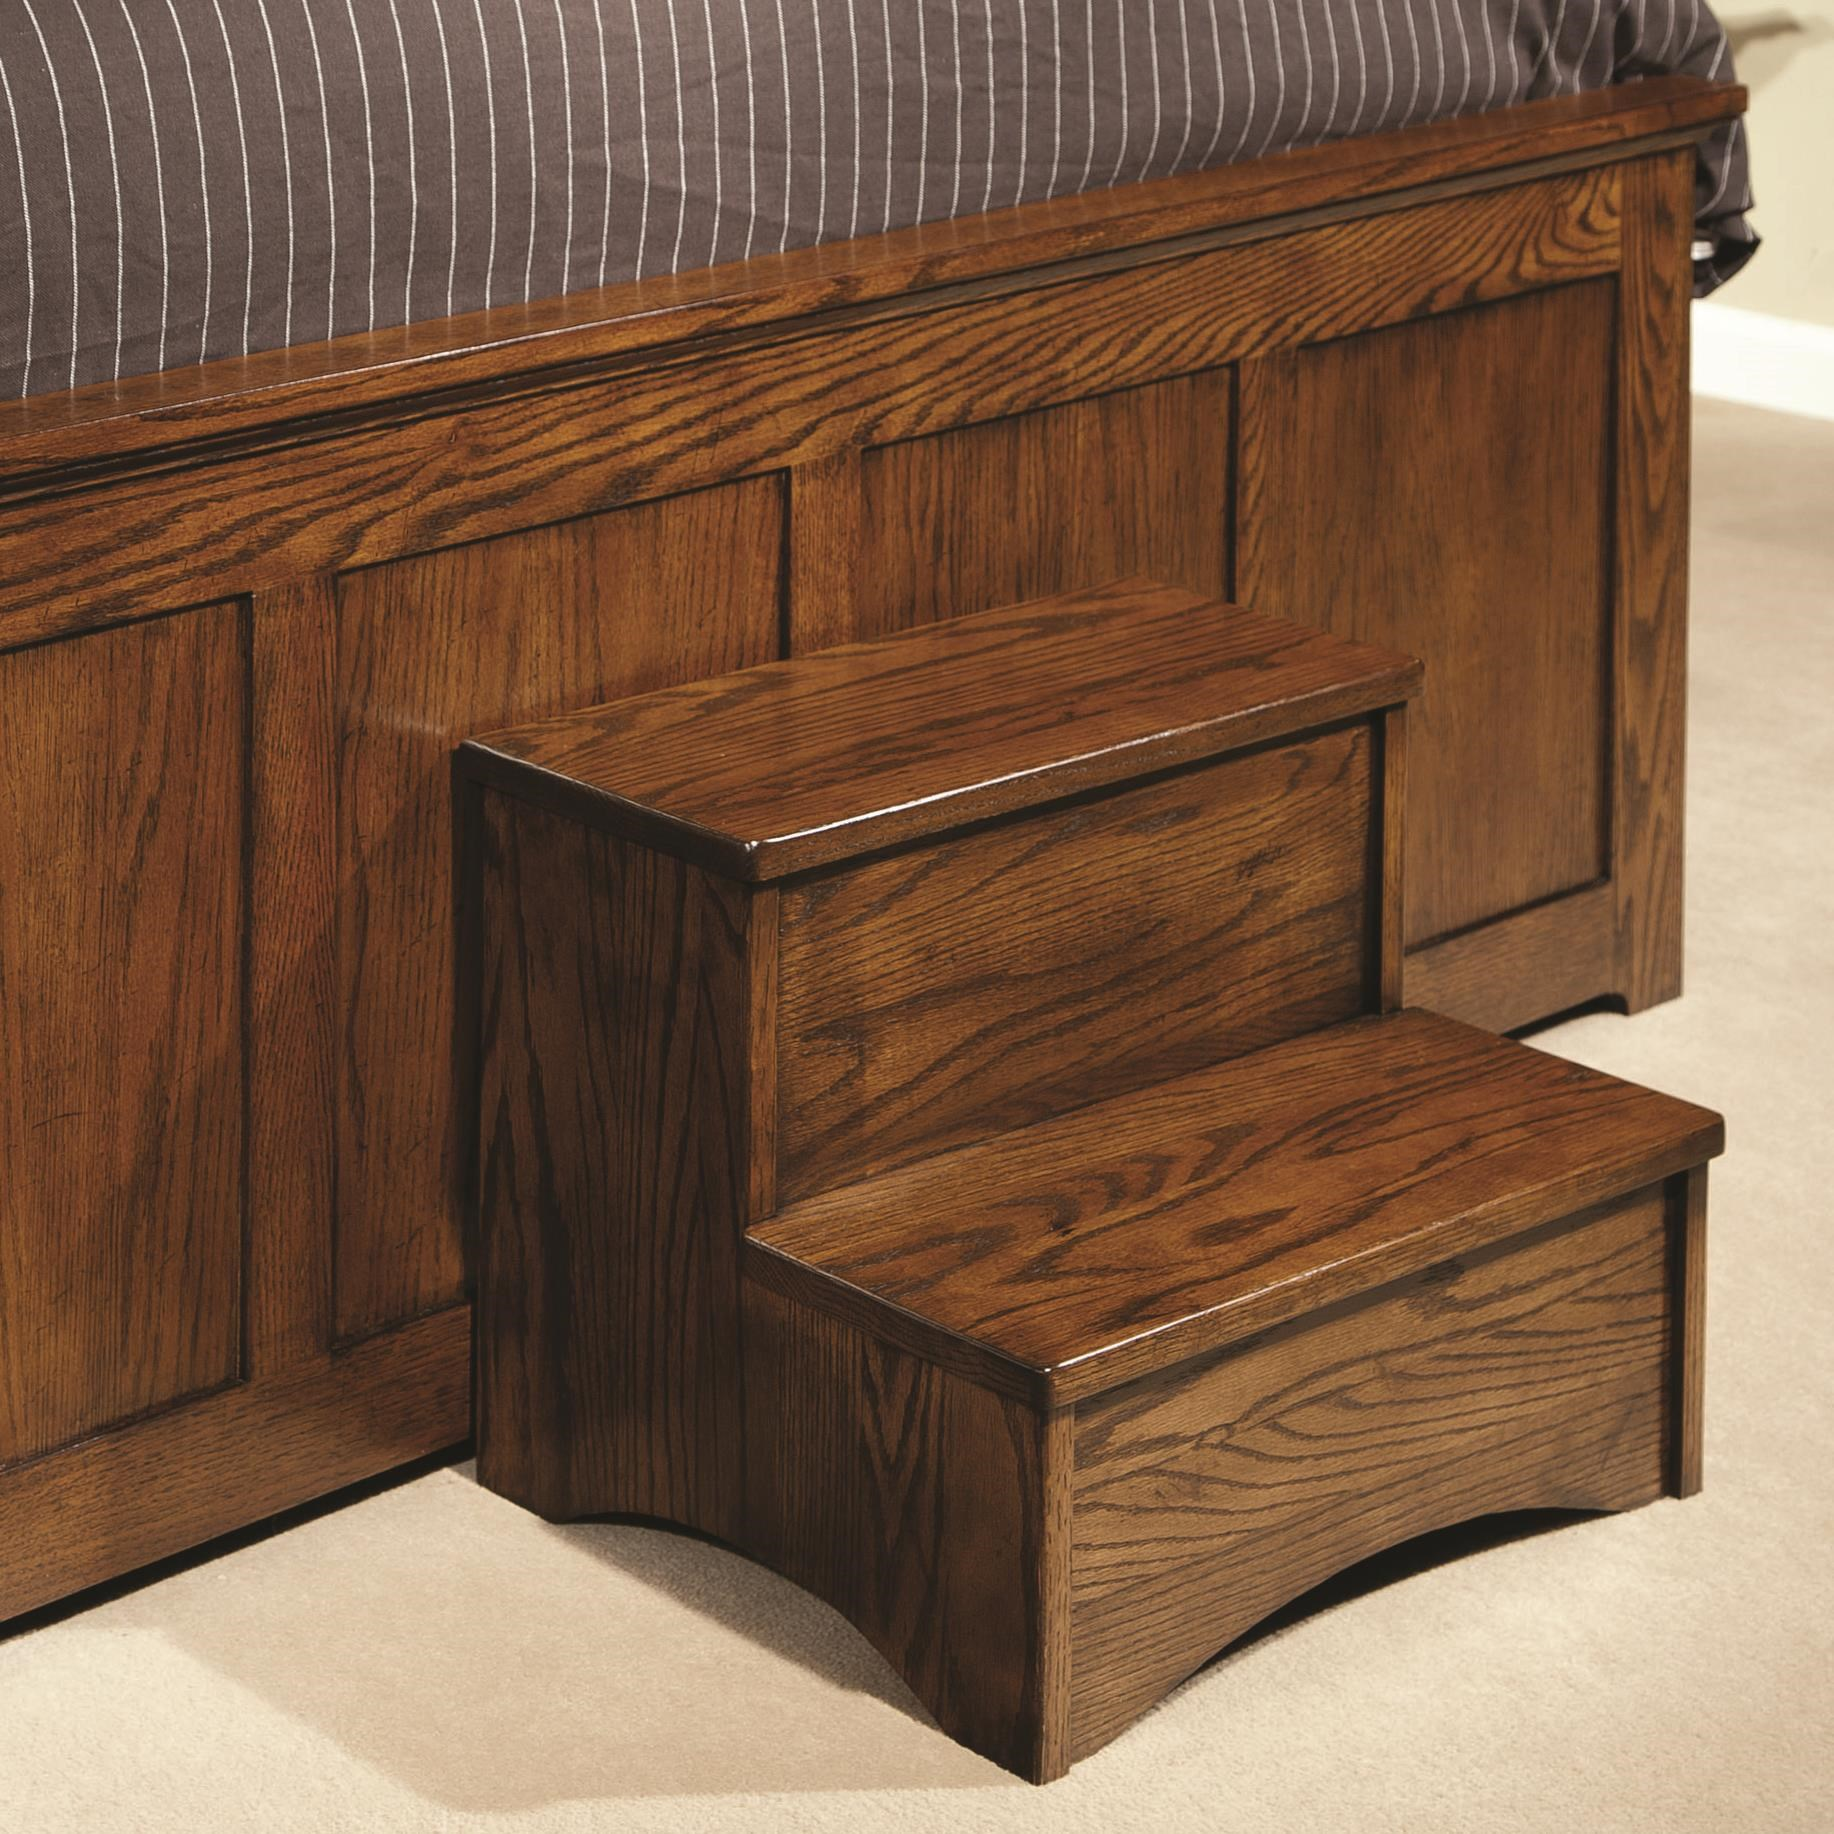 Intercon Oak Park Bed Step Stool & Intercon Oak Park Bed Step Stool - Wayside Furniture - Misc ... islam-shia.org